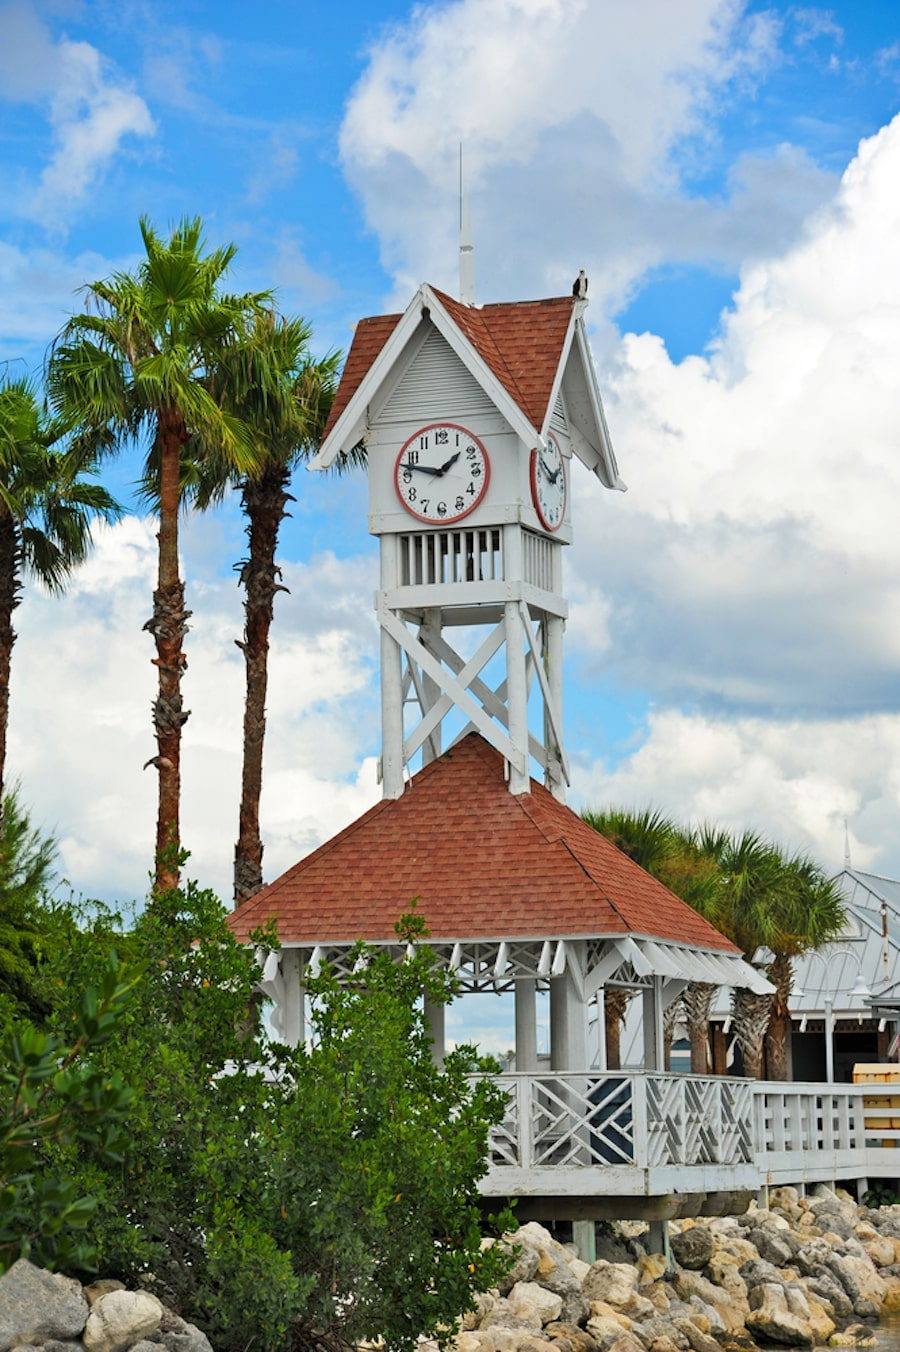 View of a historic beach pier with palm trees, a clock and blue skies, a great for spending some quality time together on your Anna Maria Island Romantic Getaway!